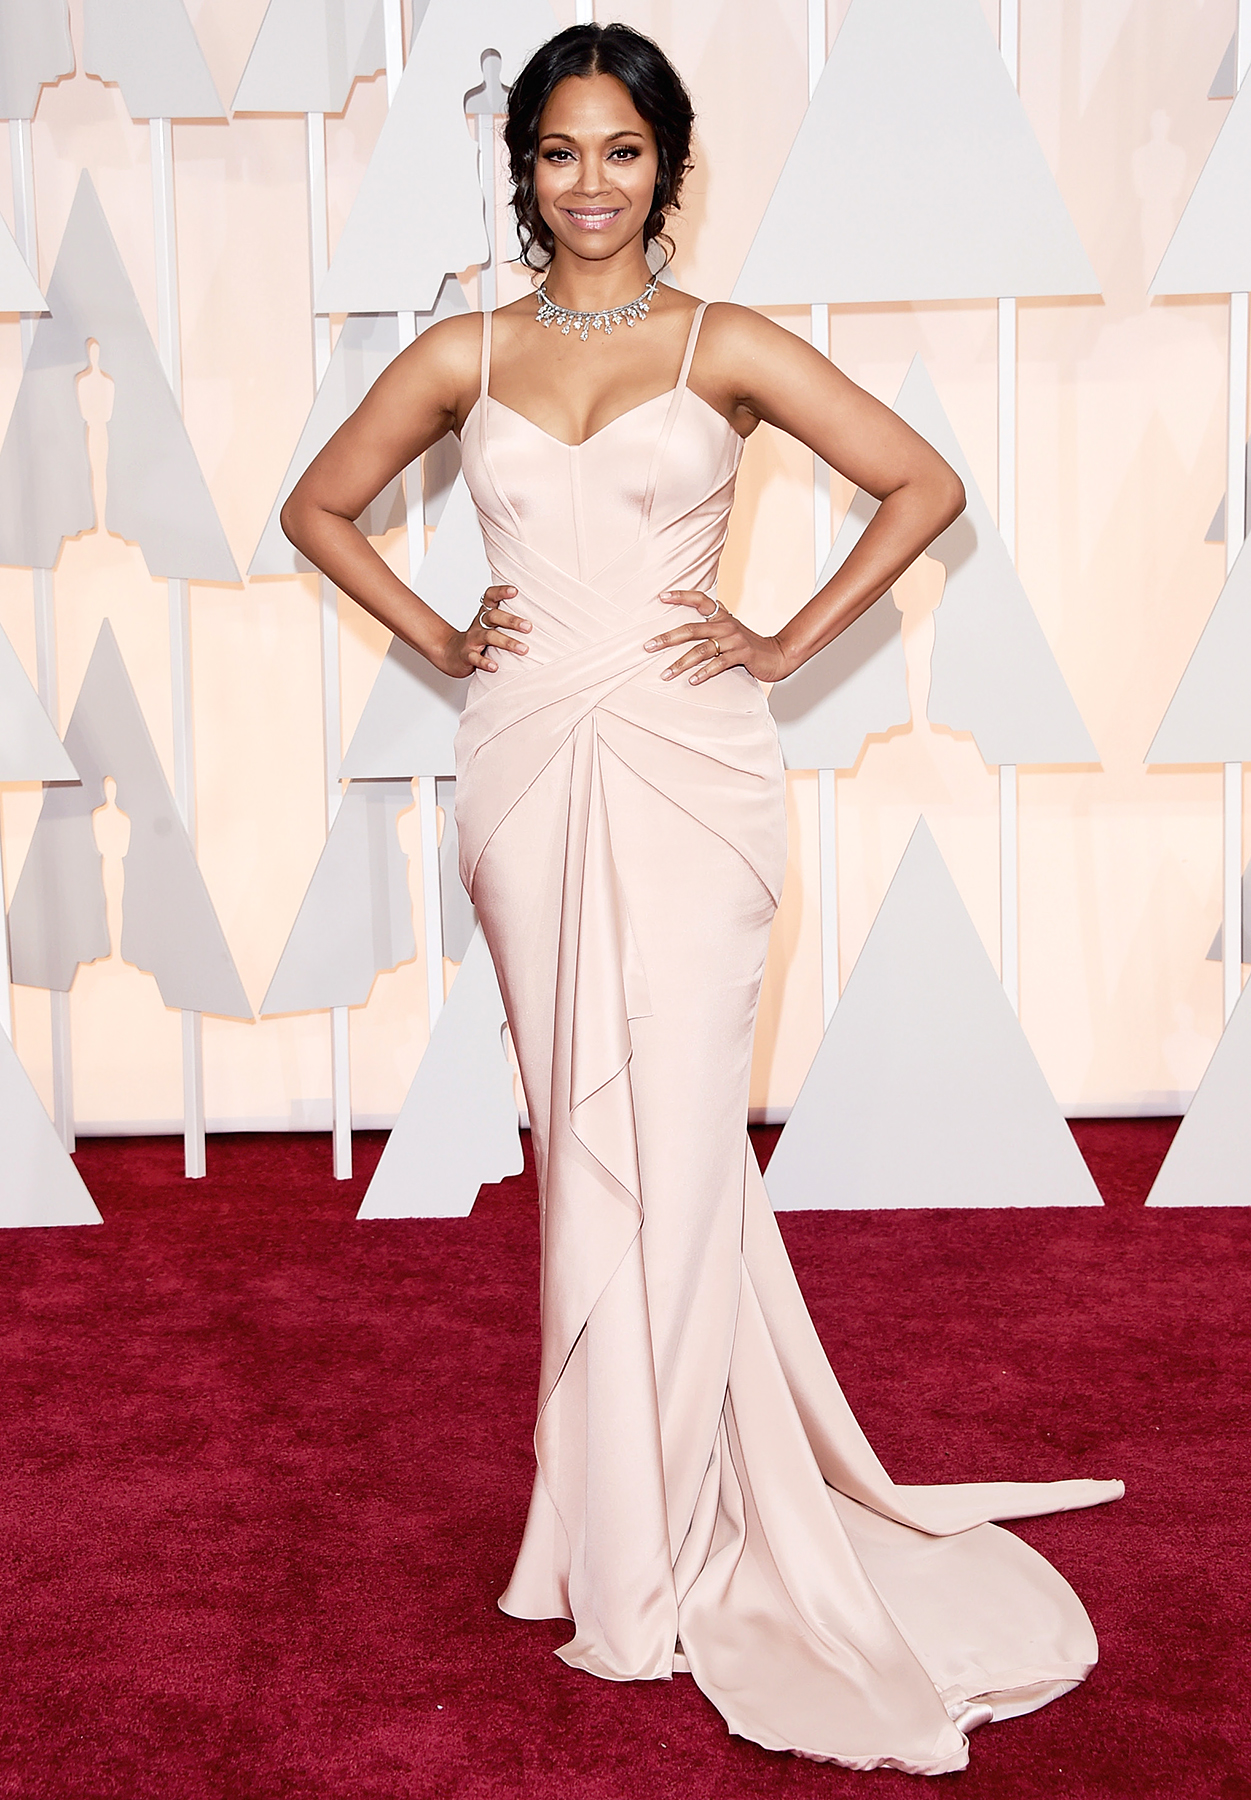 Zoe Saldana at the Oscars!